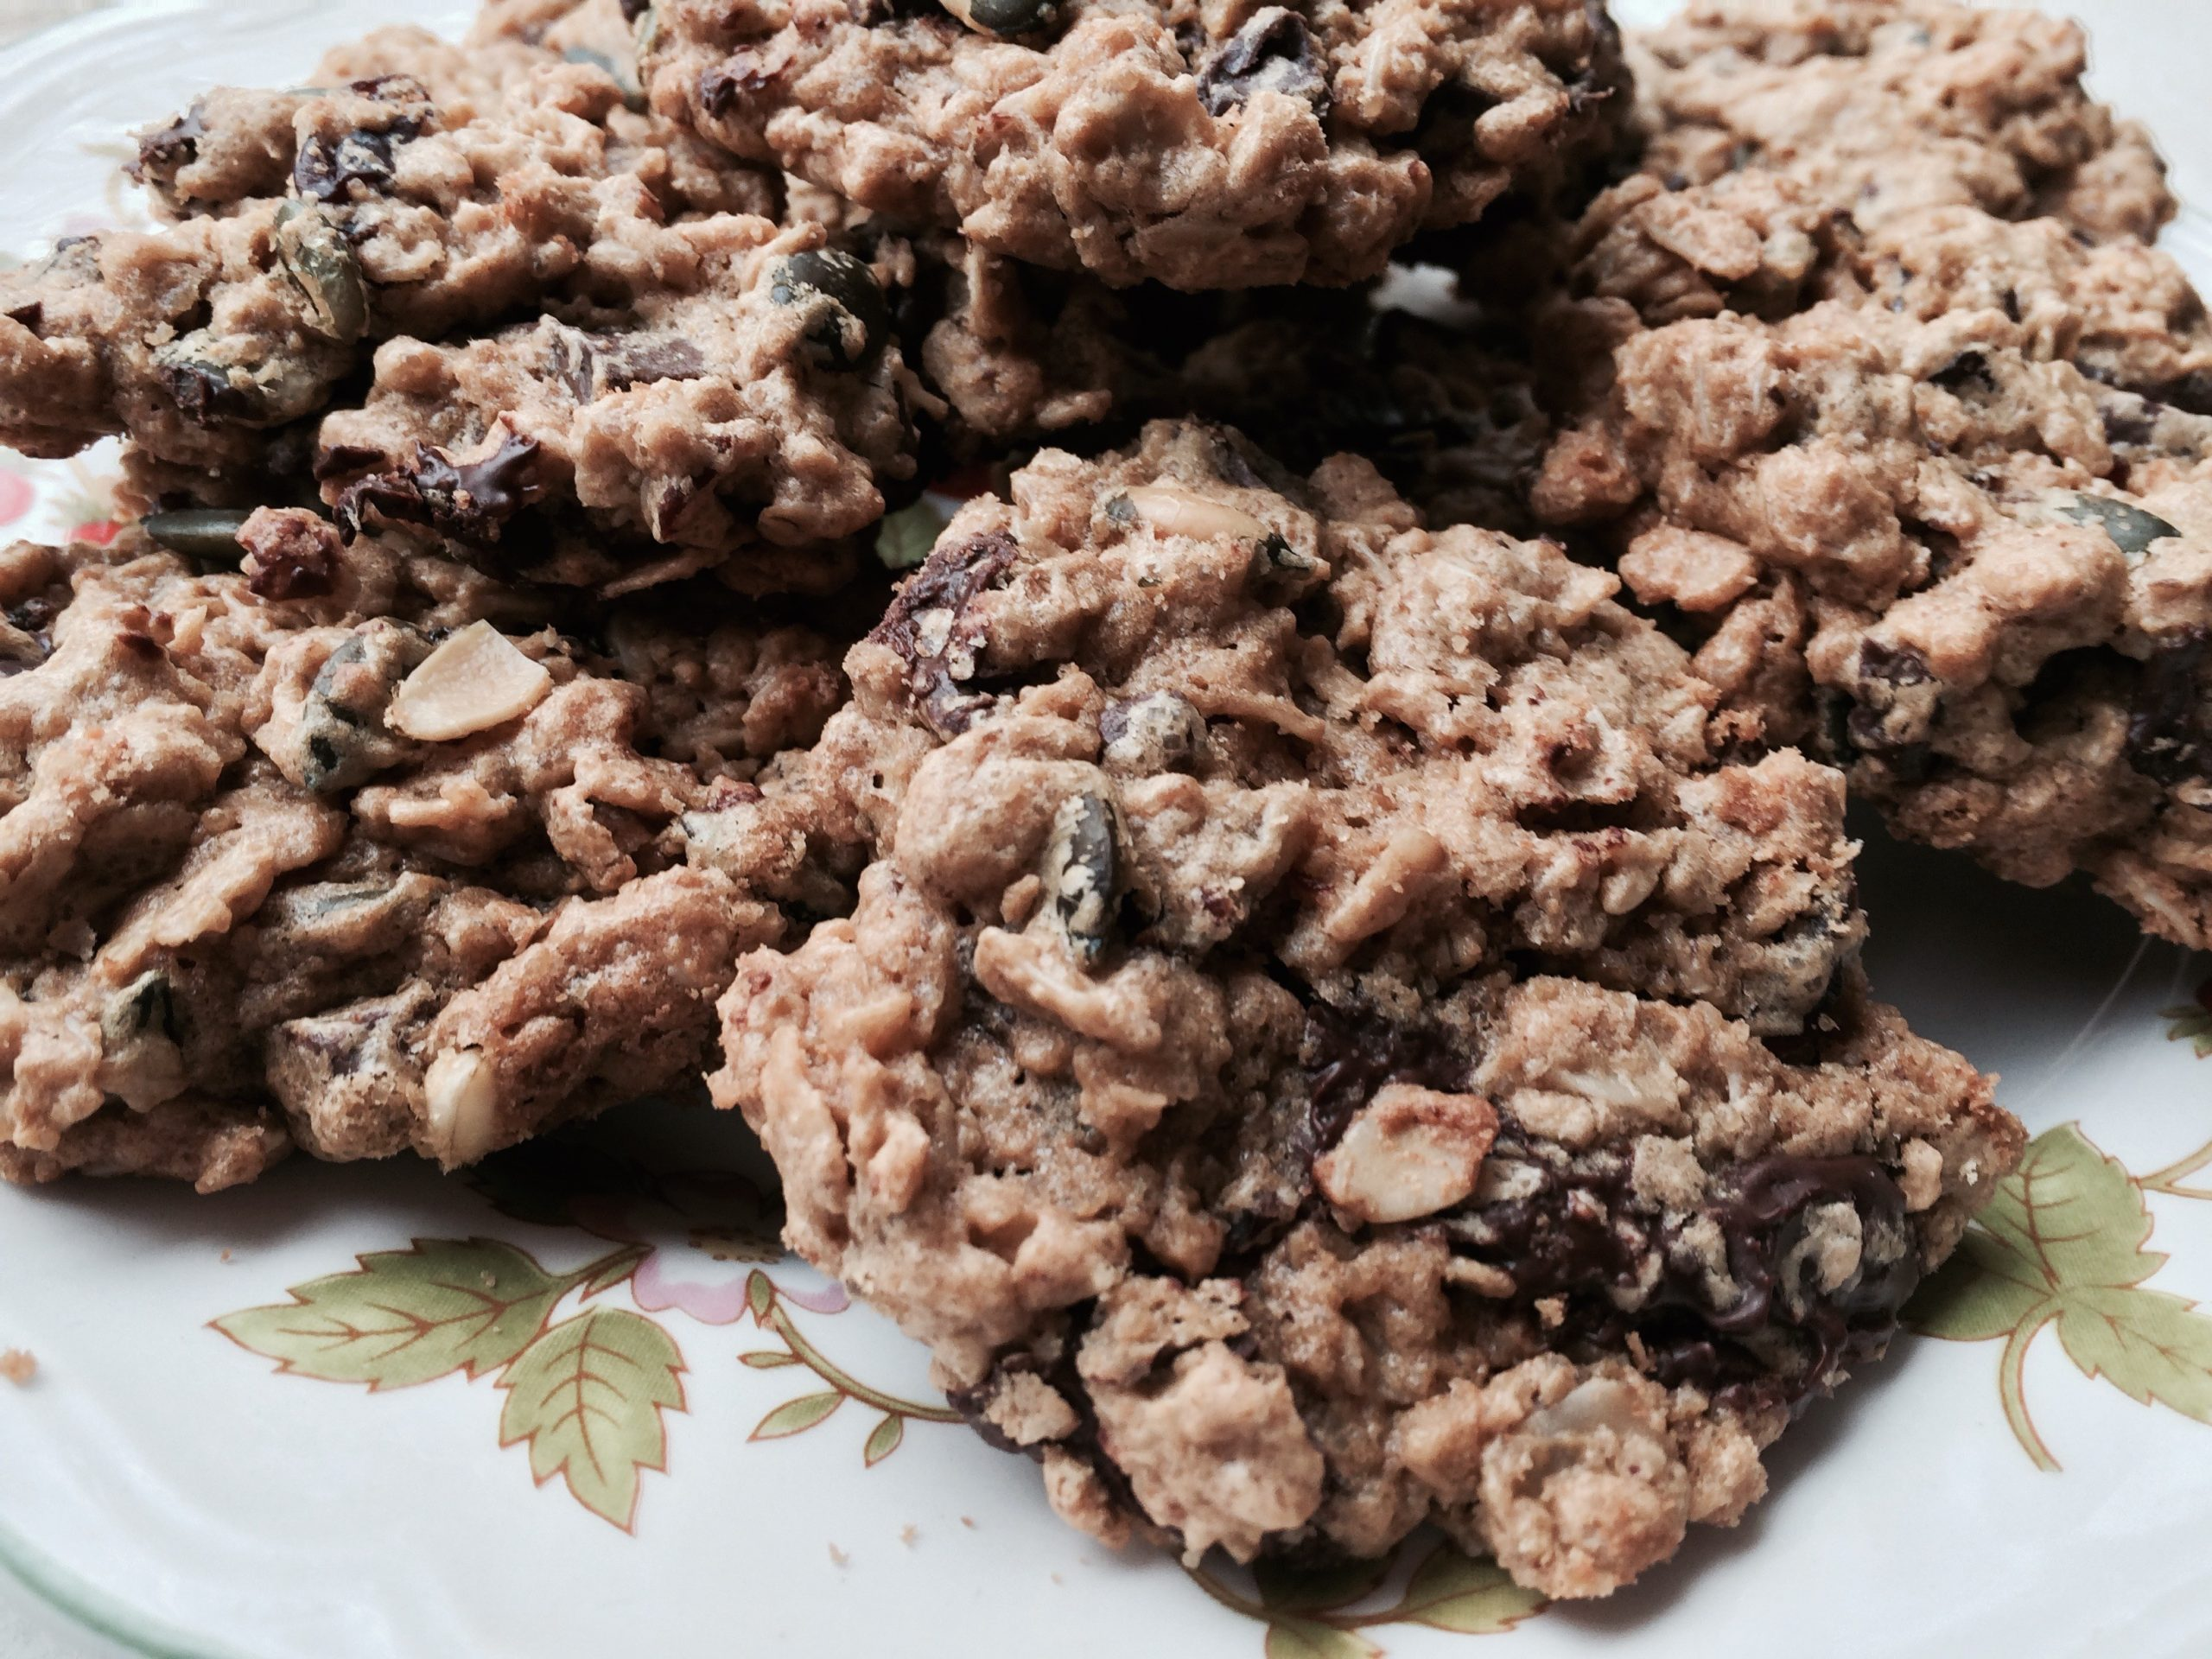 Stoner cookies from <i>Dinner at Home</i> by JeanMarie Brownson